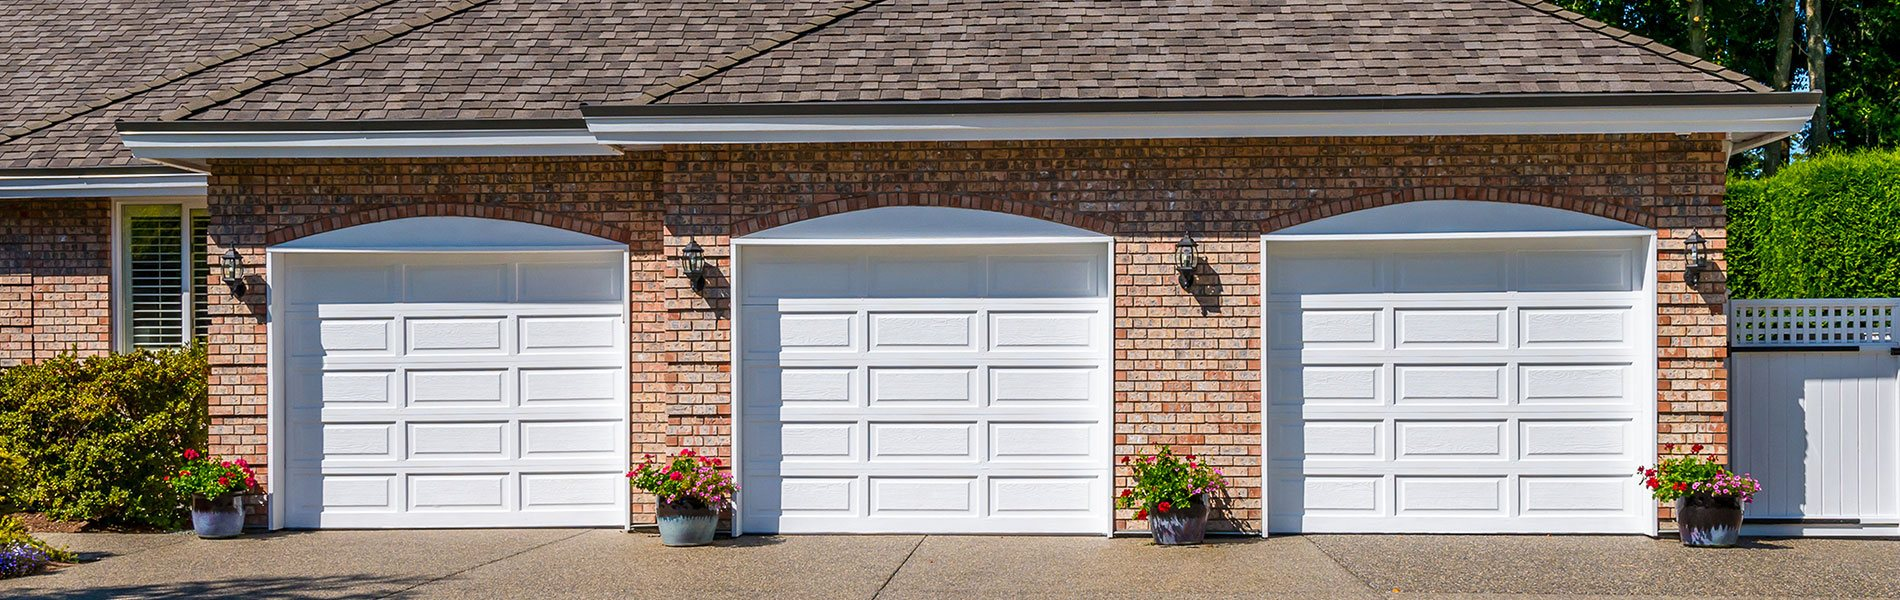 Galaxy Garage Door Service, Chicago, IL 773-467-7697